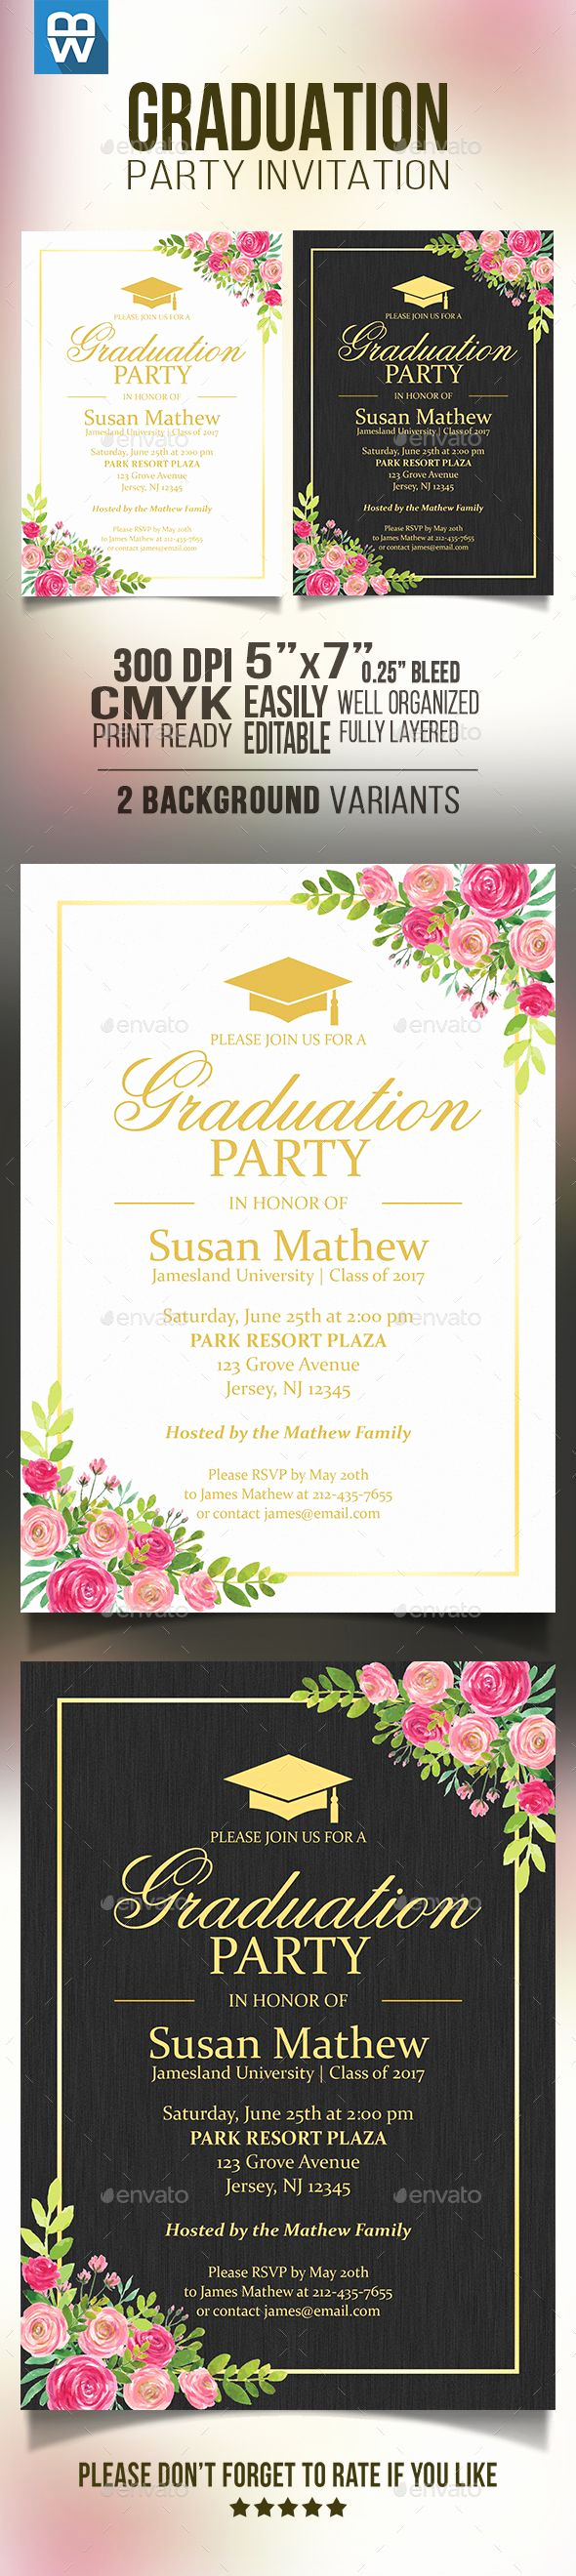 Free Graduation Invitation Template Unique 25 Unique Invitation Templates Ideas On Pinterest